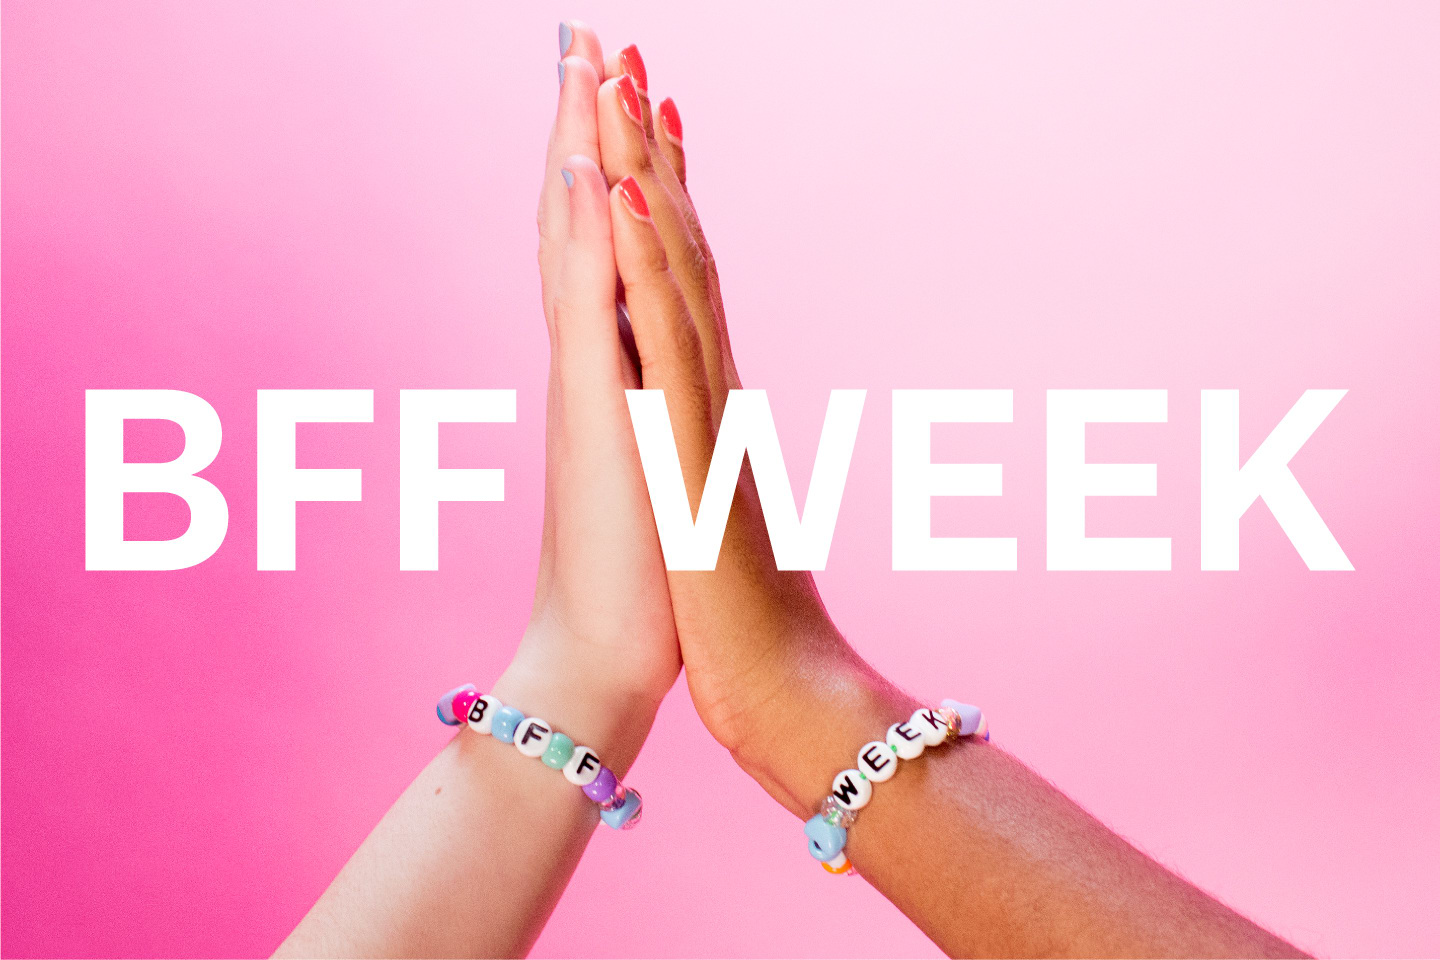 Introducing BFF Week